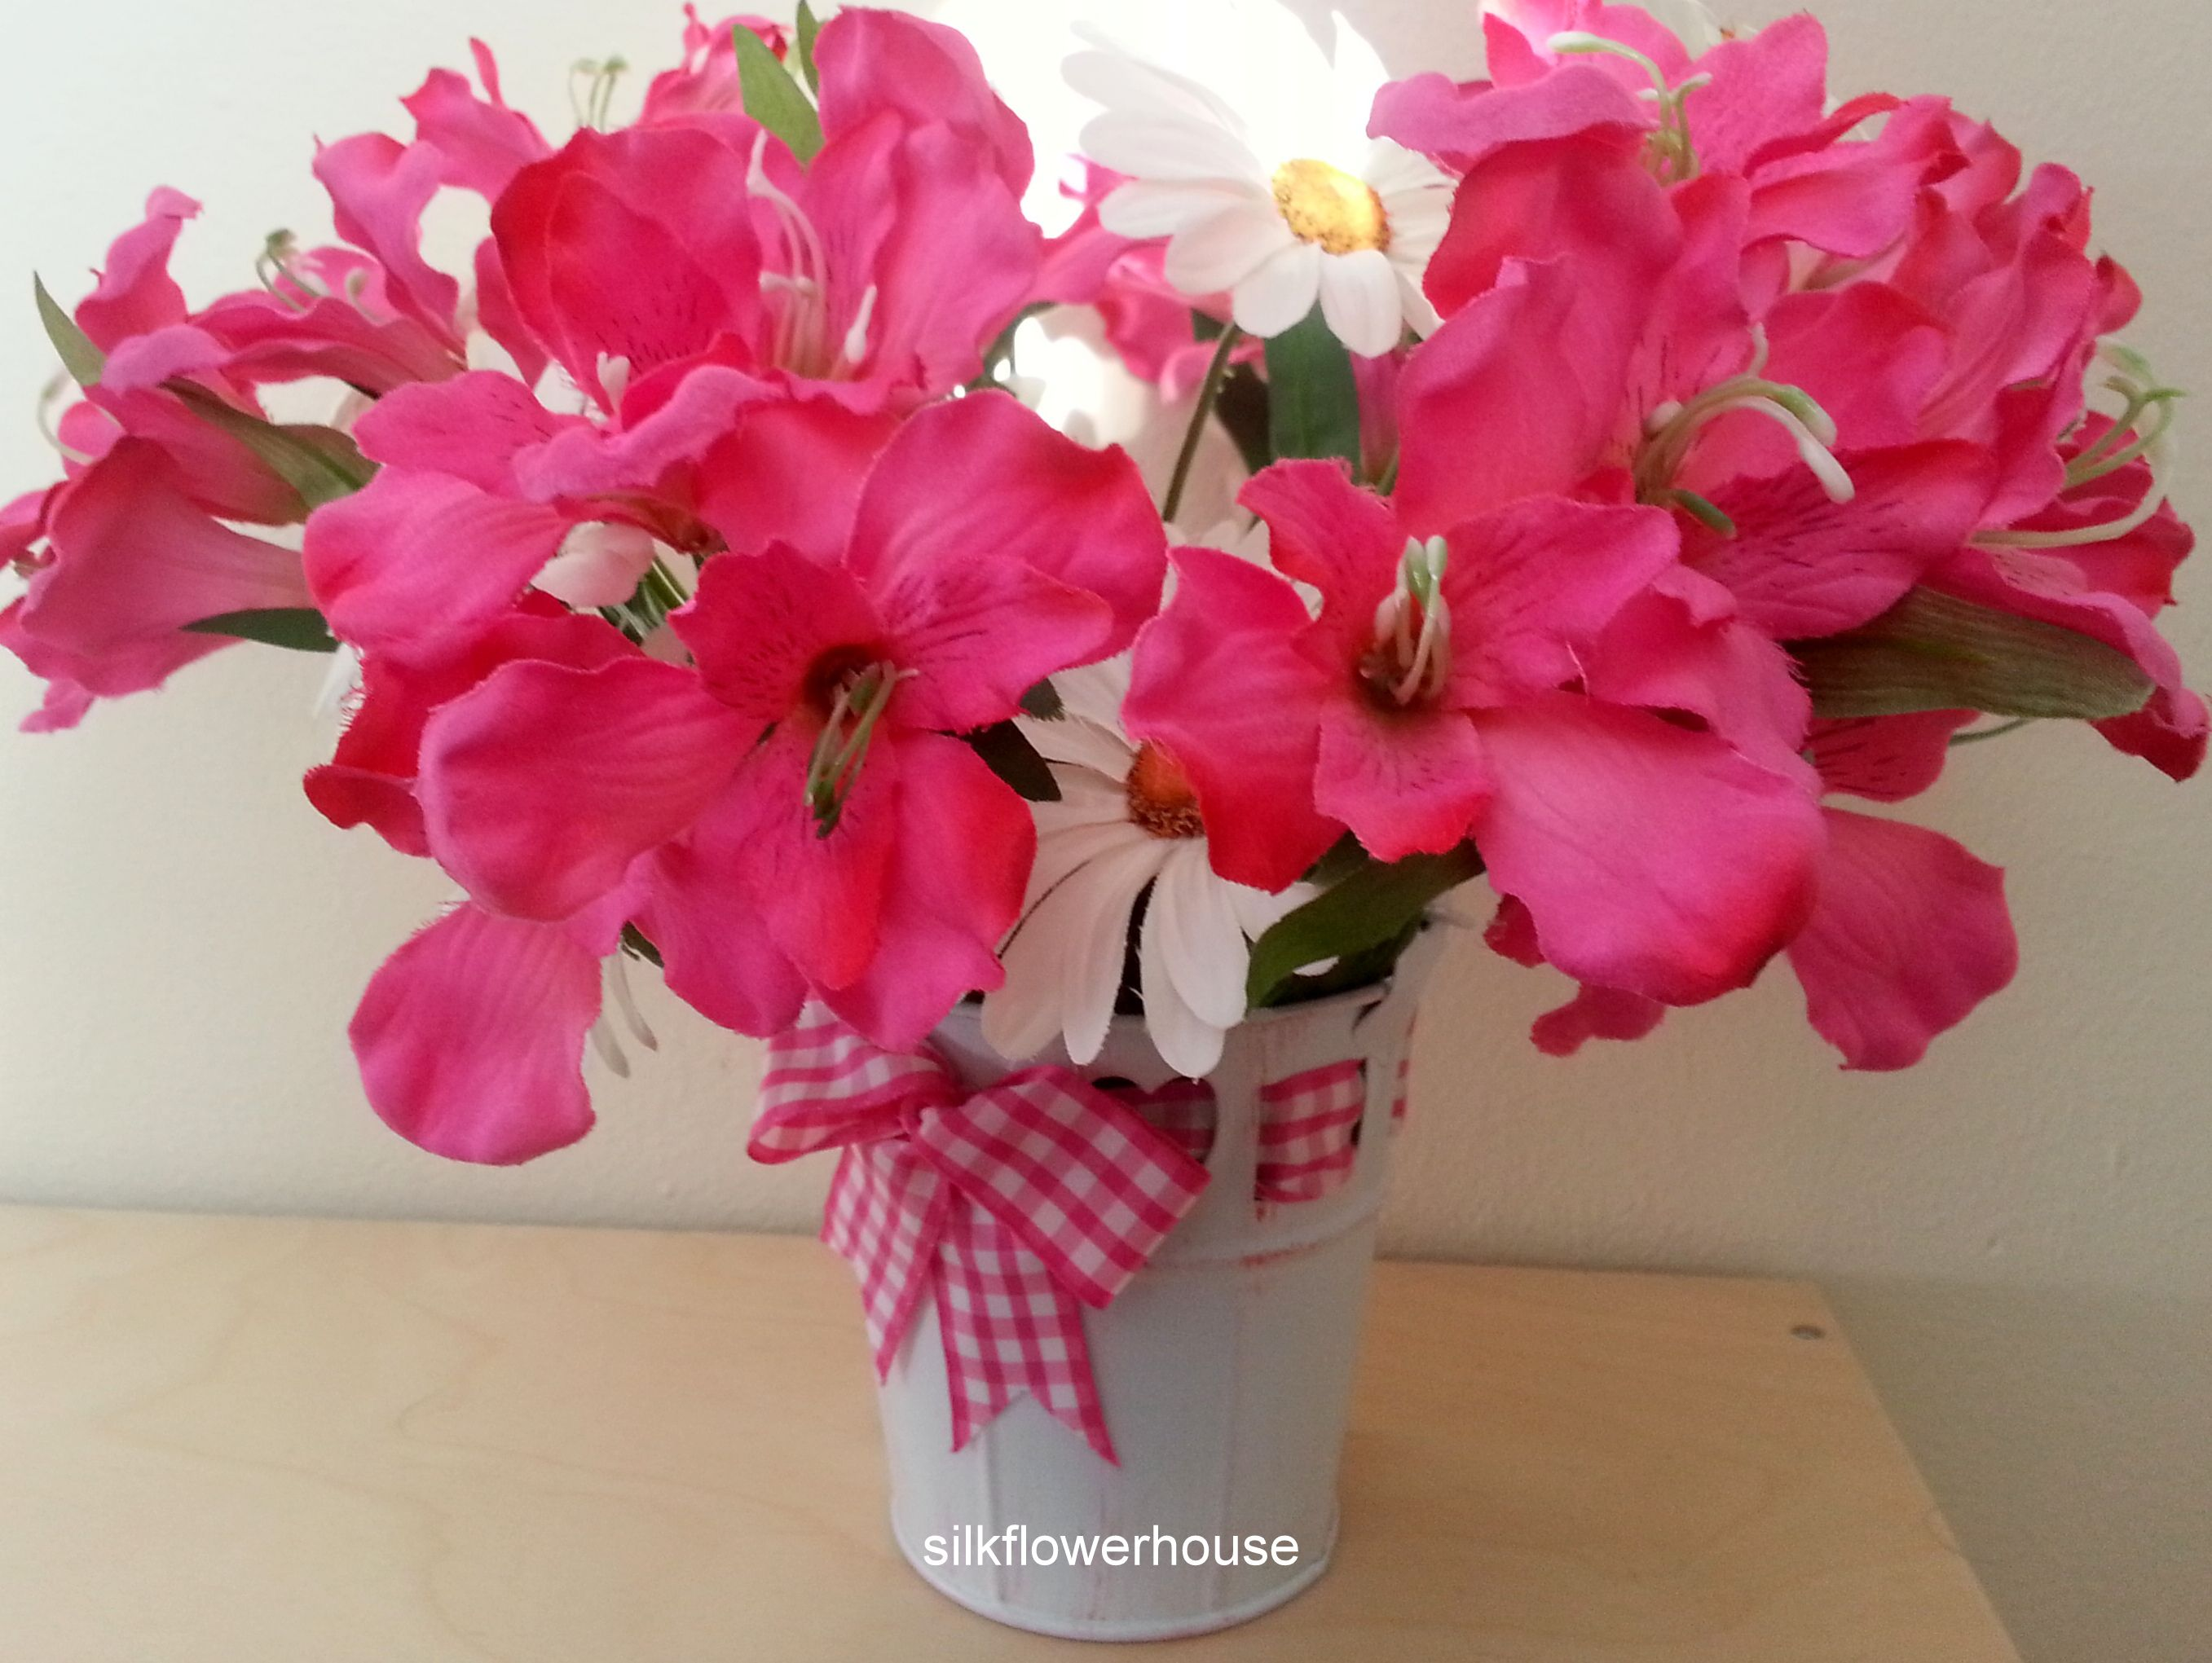 Selection Of Pink Silk Flowers In A Metal Pail For Grave Or Memorial